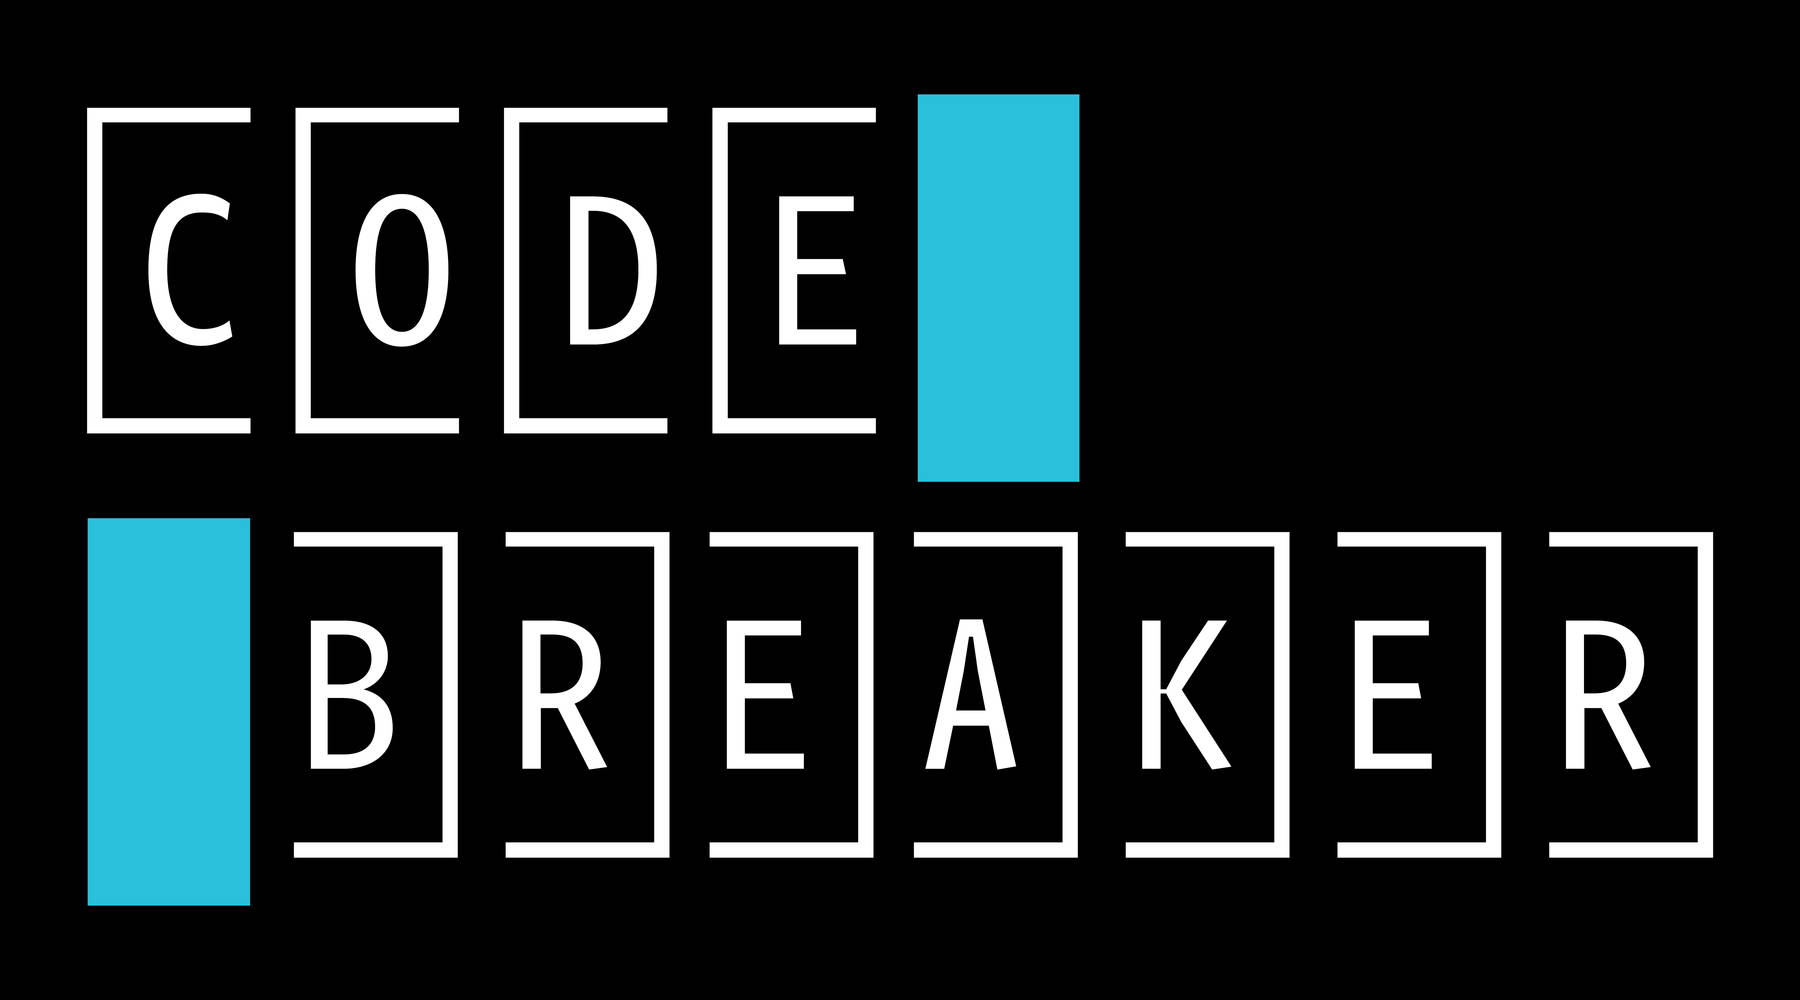 Codebreaker: Can It Save Us?